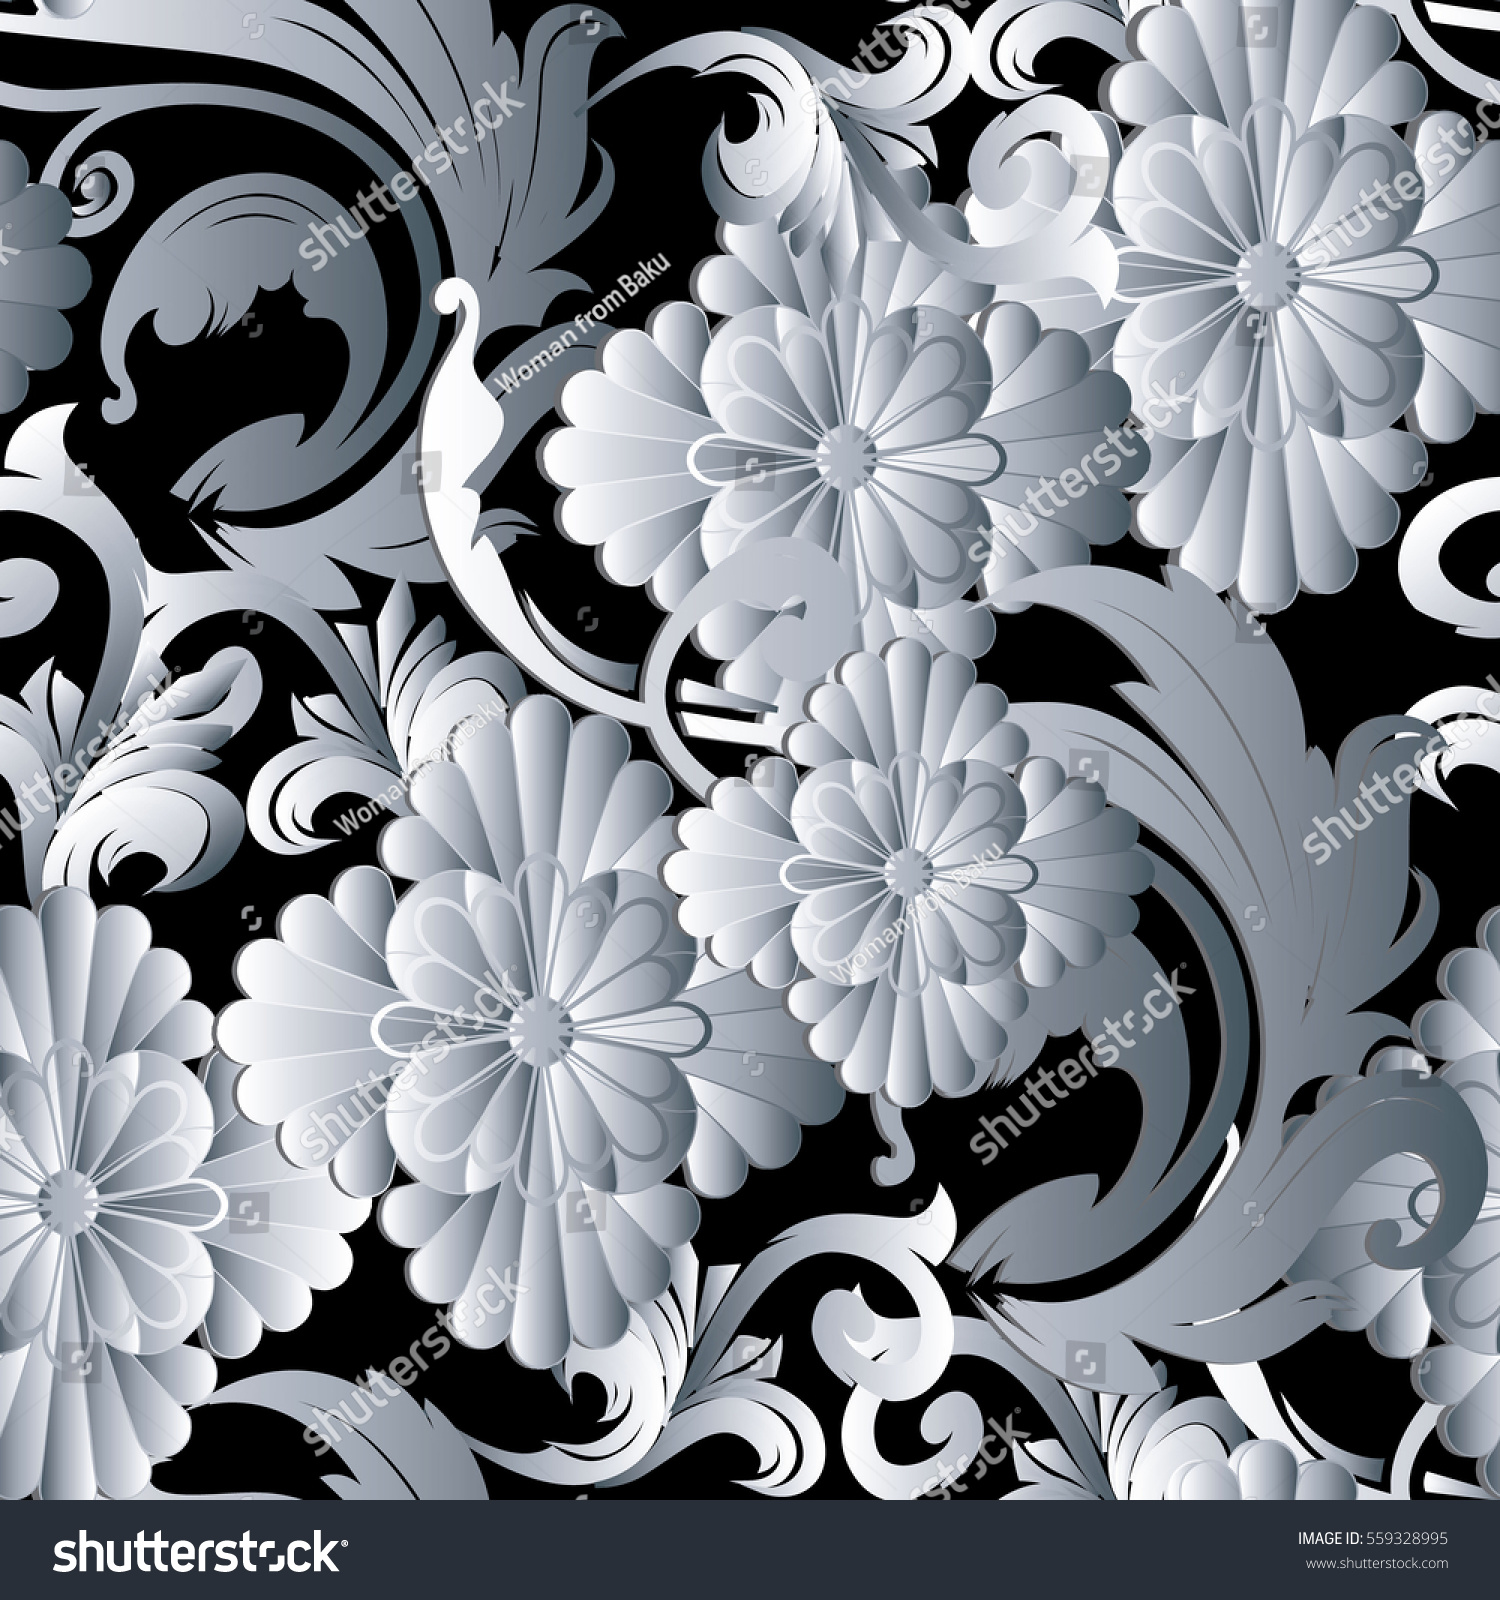 Flowers Seamless Pattern Floral Black Background Wallpaper Stock